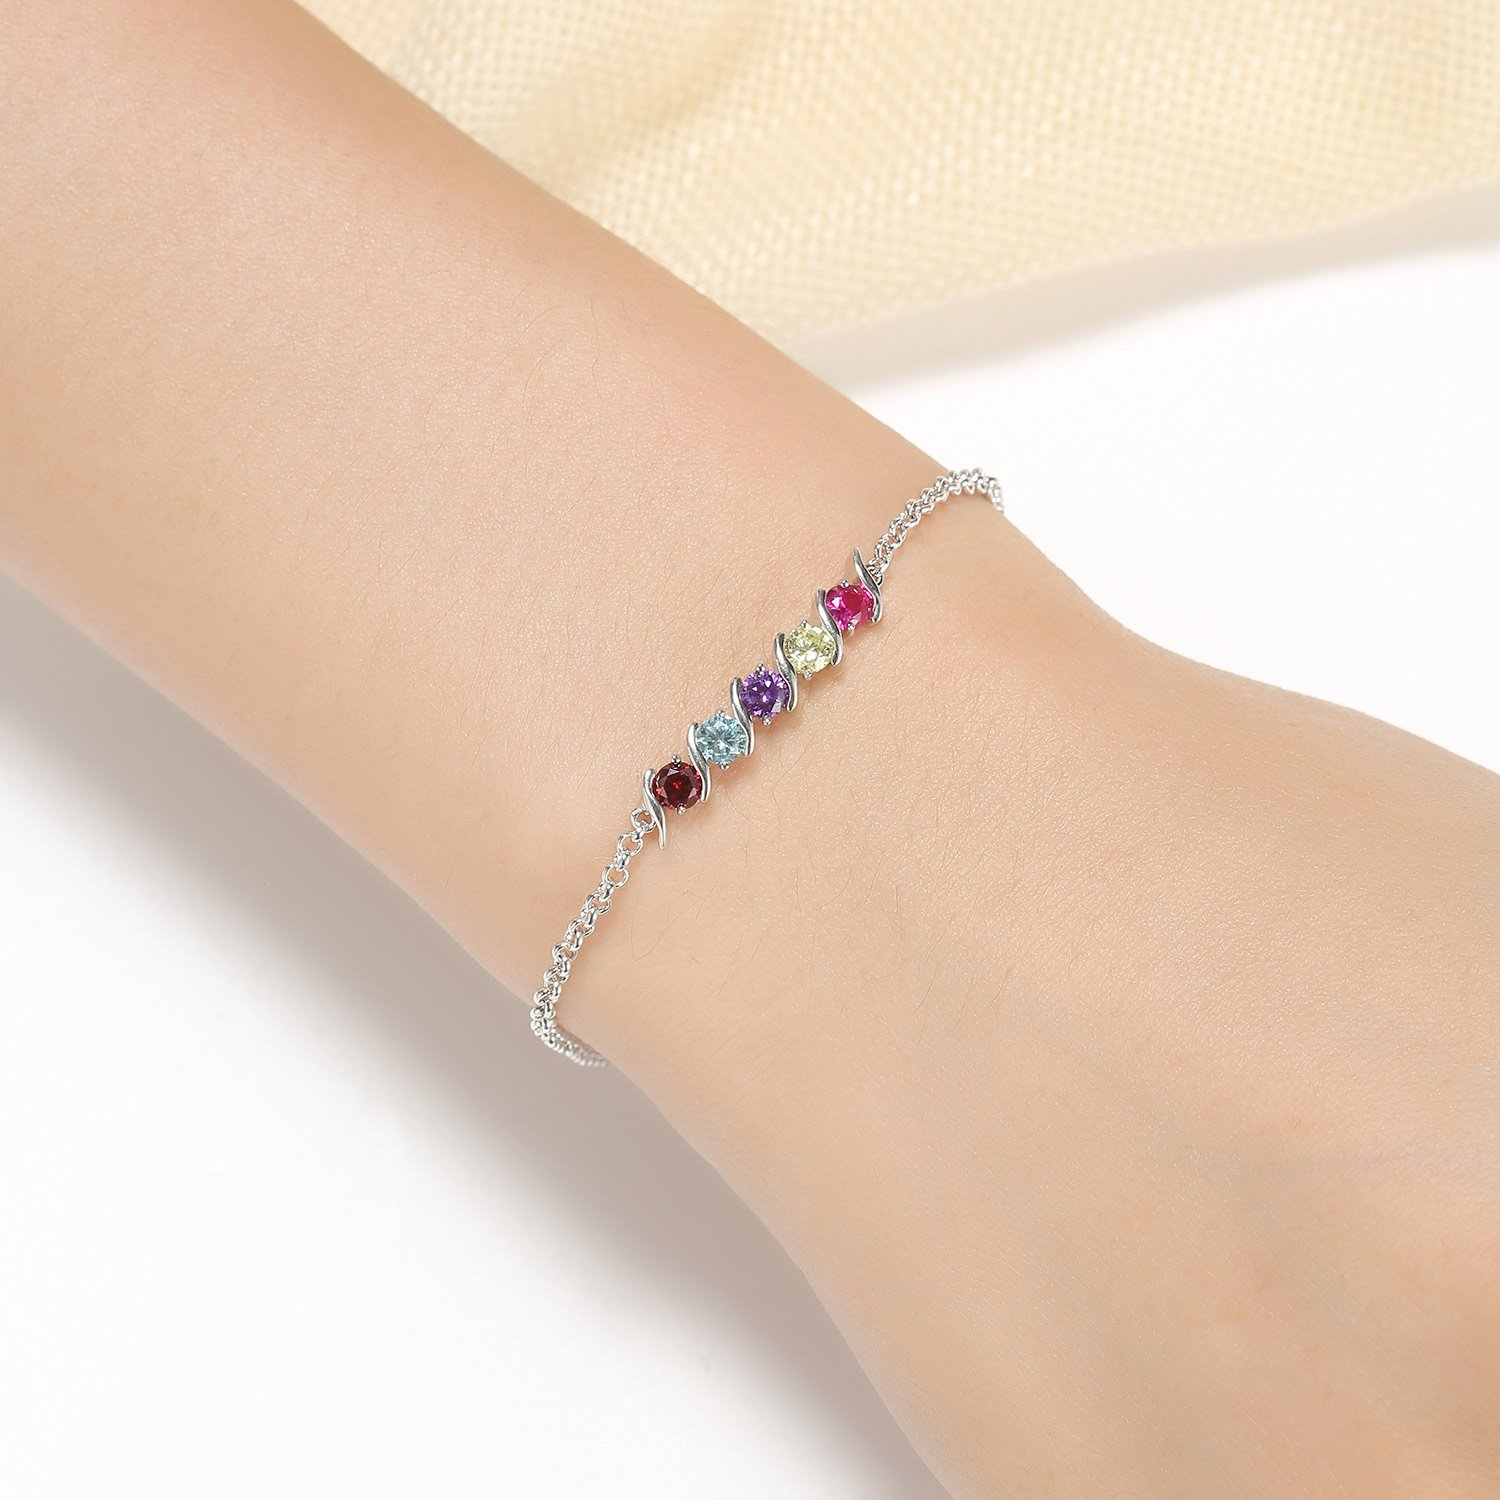 Caperci 925 Sterling Silver Round Shaped Multi-Gemstones Adjustable Link Tennis Bracelet for Women by Caperci (Image #3)